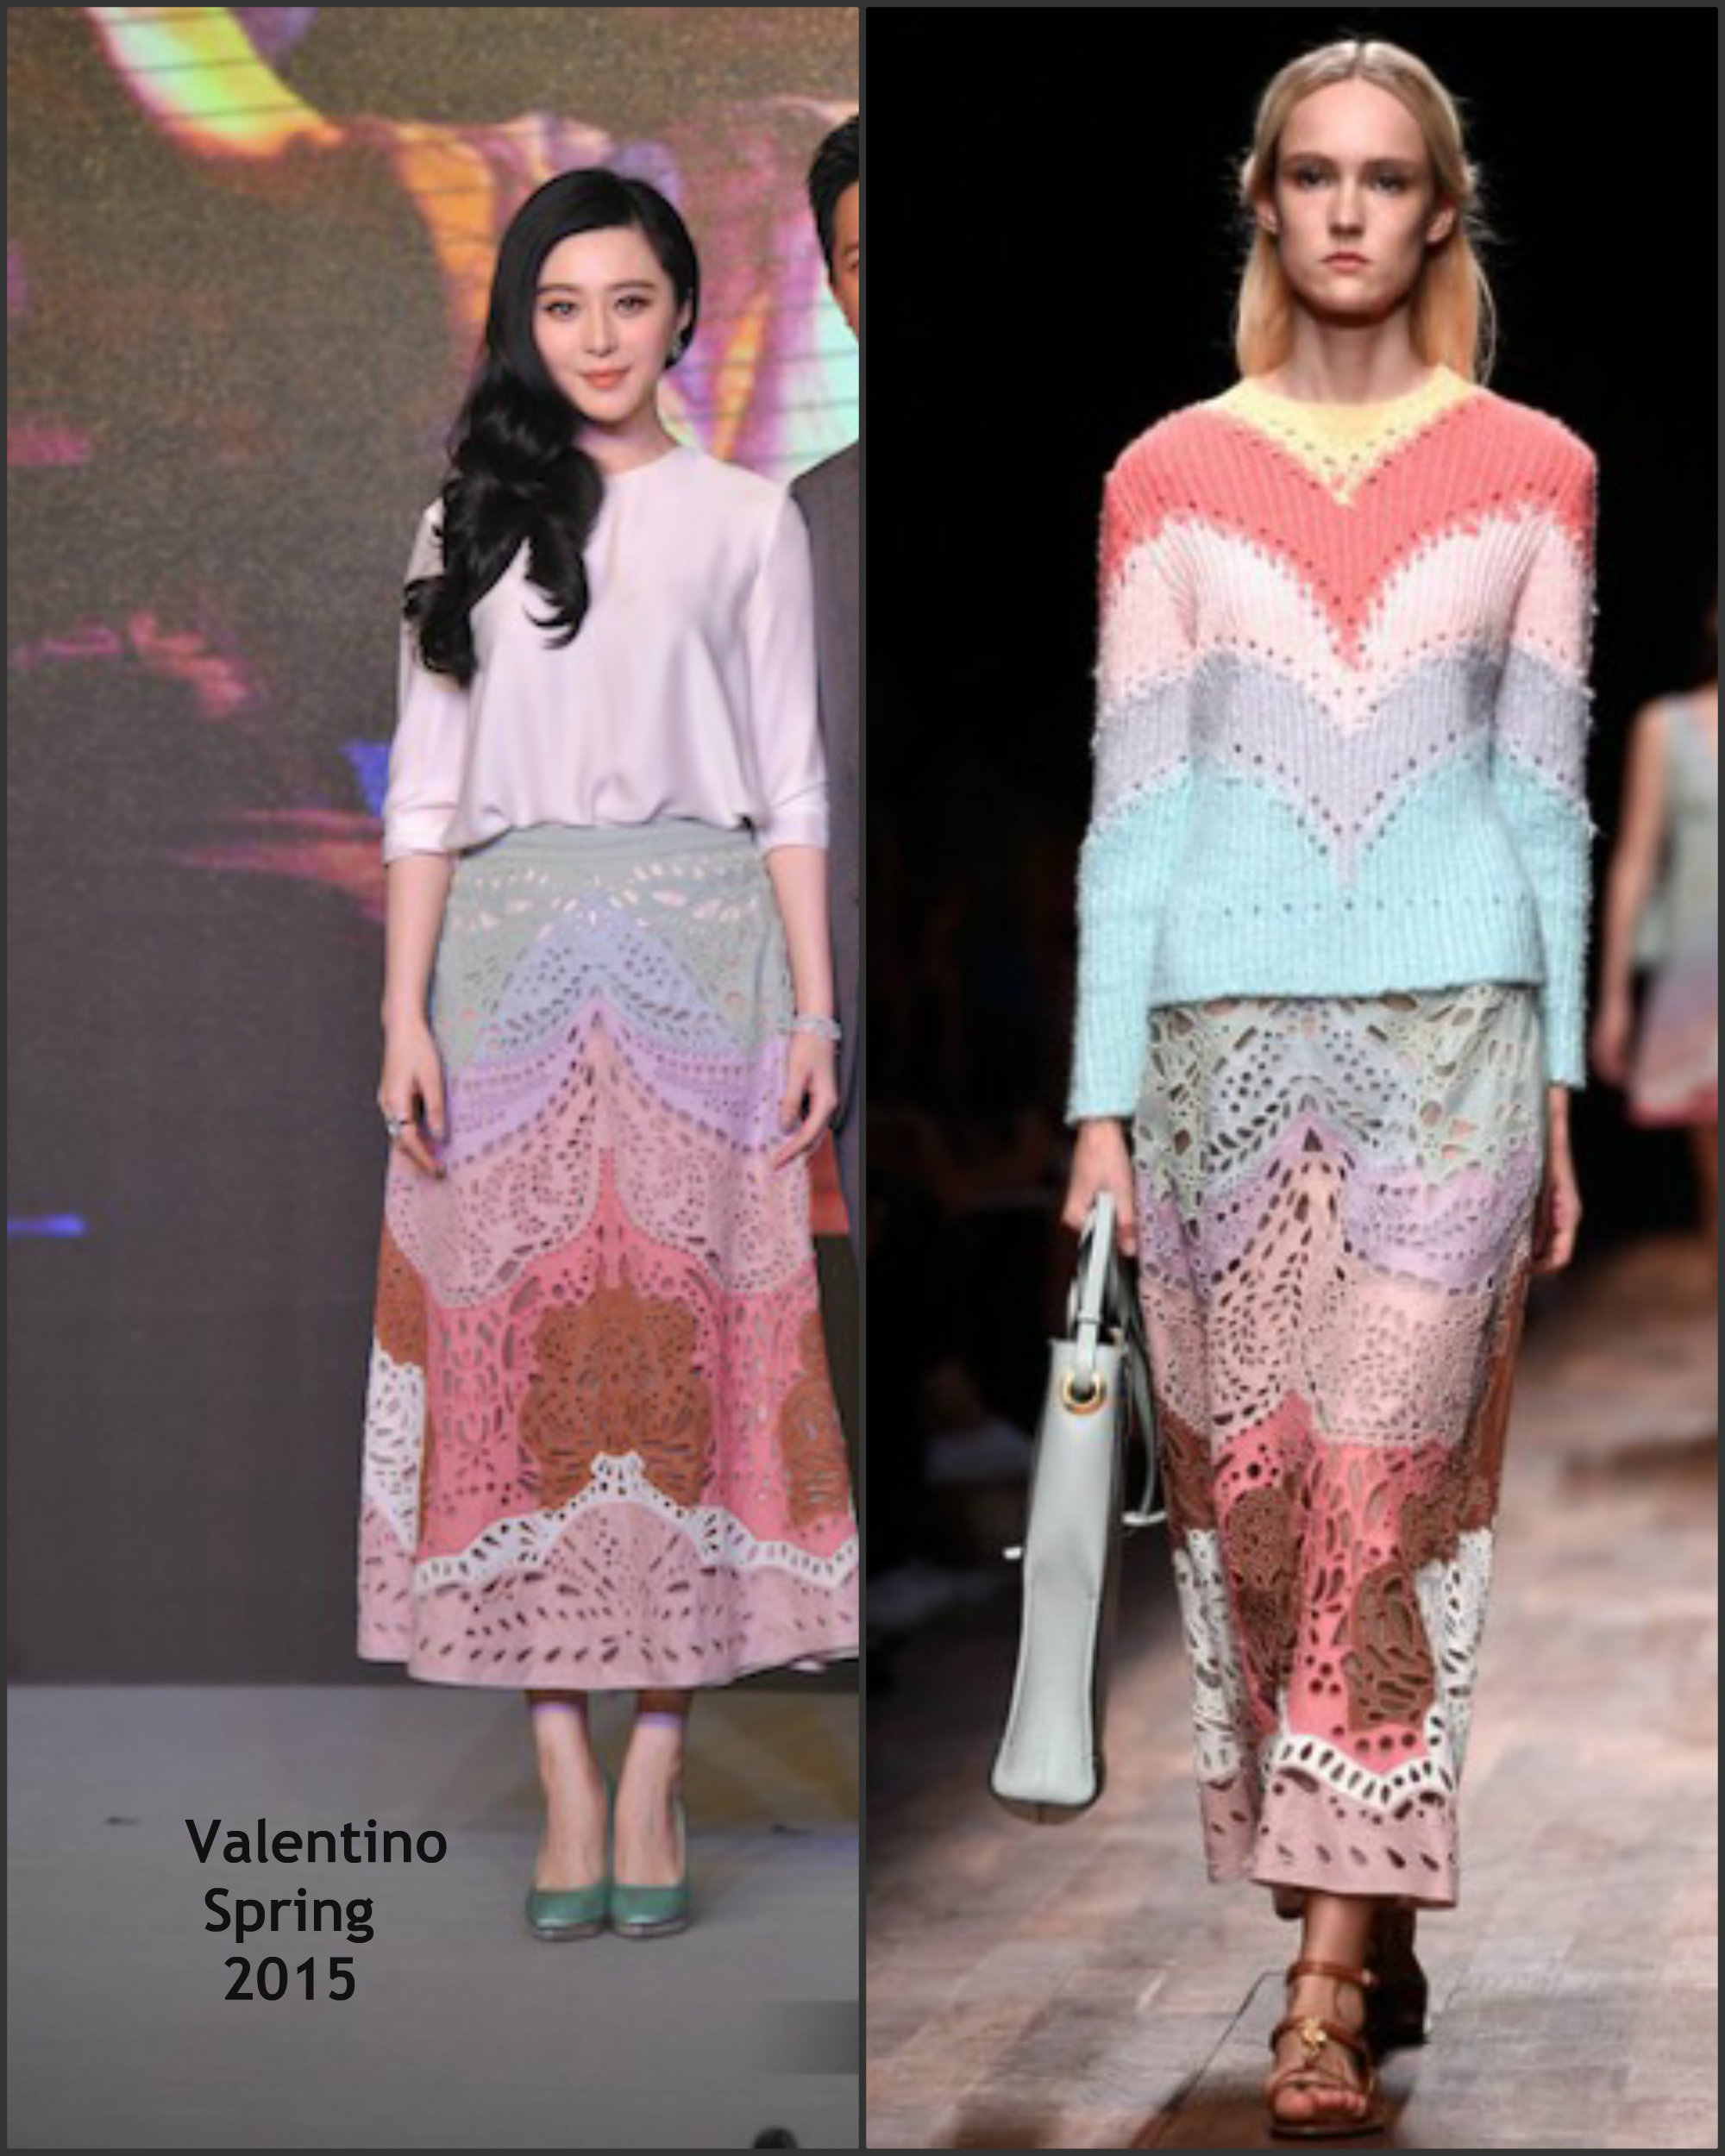 Fan-Bingbing-In-Valentino-at-Ever-Since-We-Love-Press-Conference